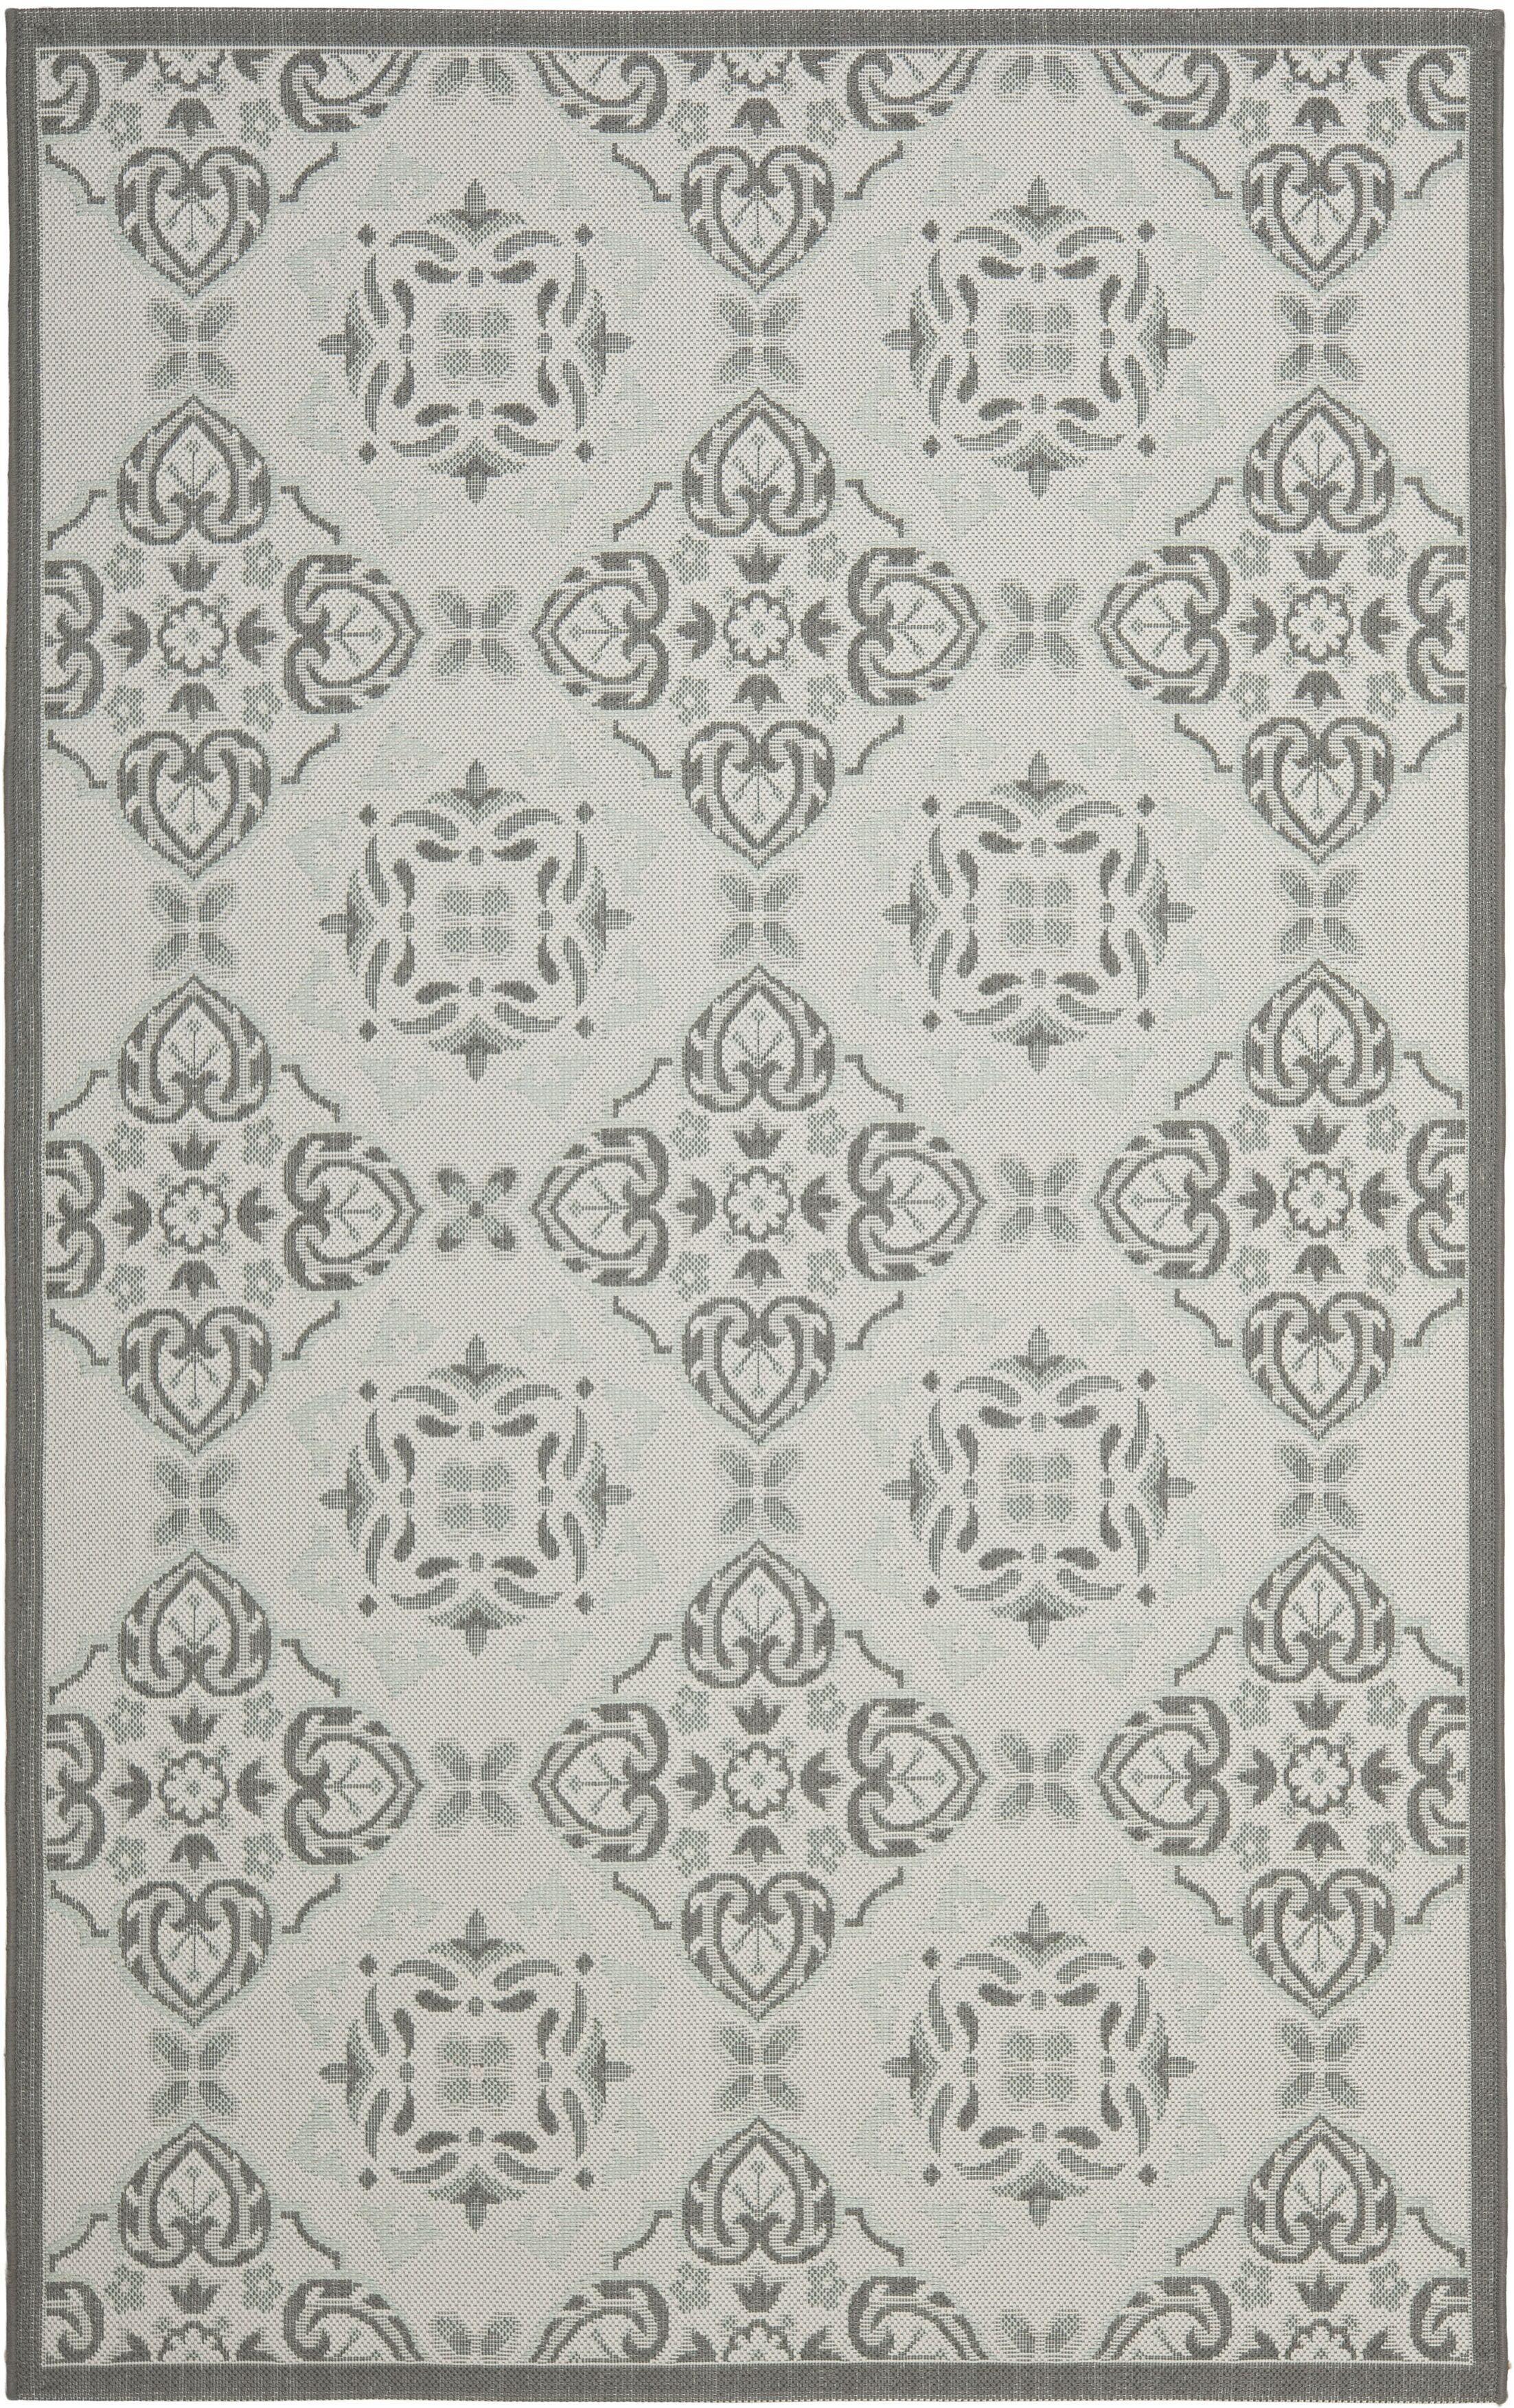 Short Light Grey/Anthracite Indoor/Outdoor Synthetic  Rug Rug Size: Rectangle 8' x 11'2